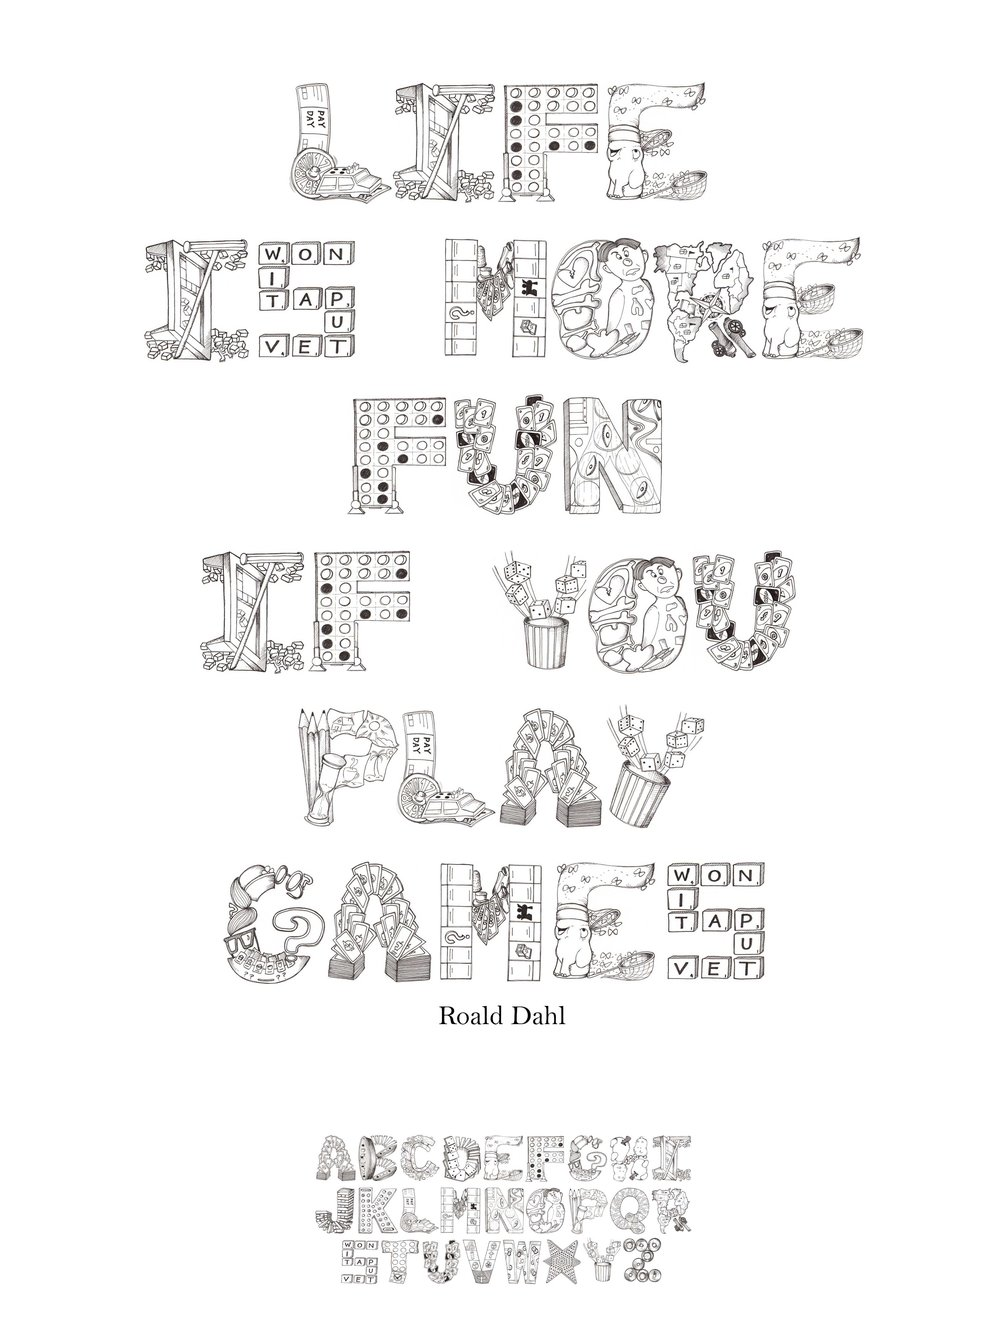 """Board Game Alphabet - This alphabet allows a glimpse into the fun imagination of board games. Each letter correlates with a game that starts with that letter (ie. A is Apples to Apples cards, B is Battleship pieces) The alphabet is hand drawn with Pigma Micron pens.Poster using the alphabet typeset as words. Quote by Roald Dahl """"Life is more fun if you play games"""""""